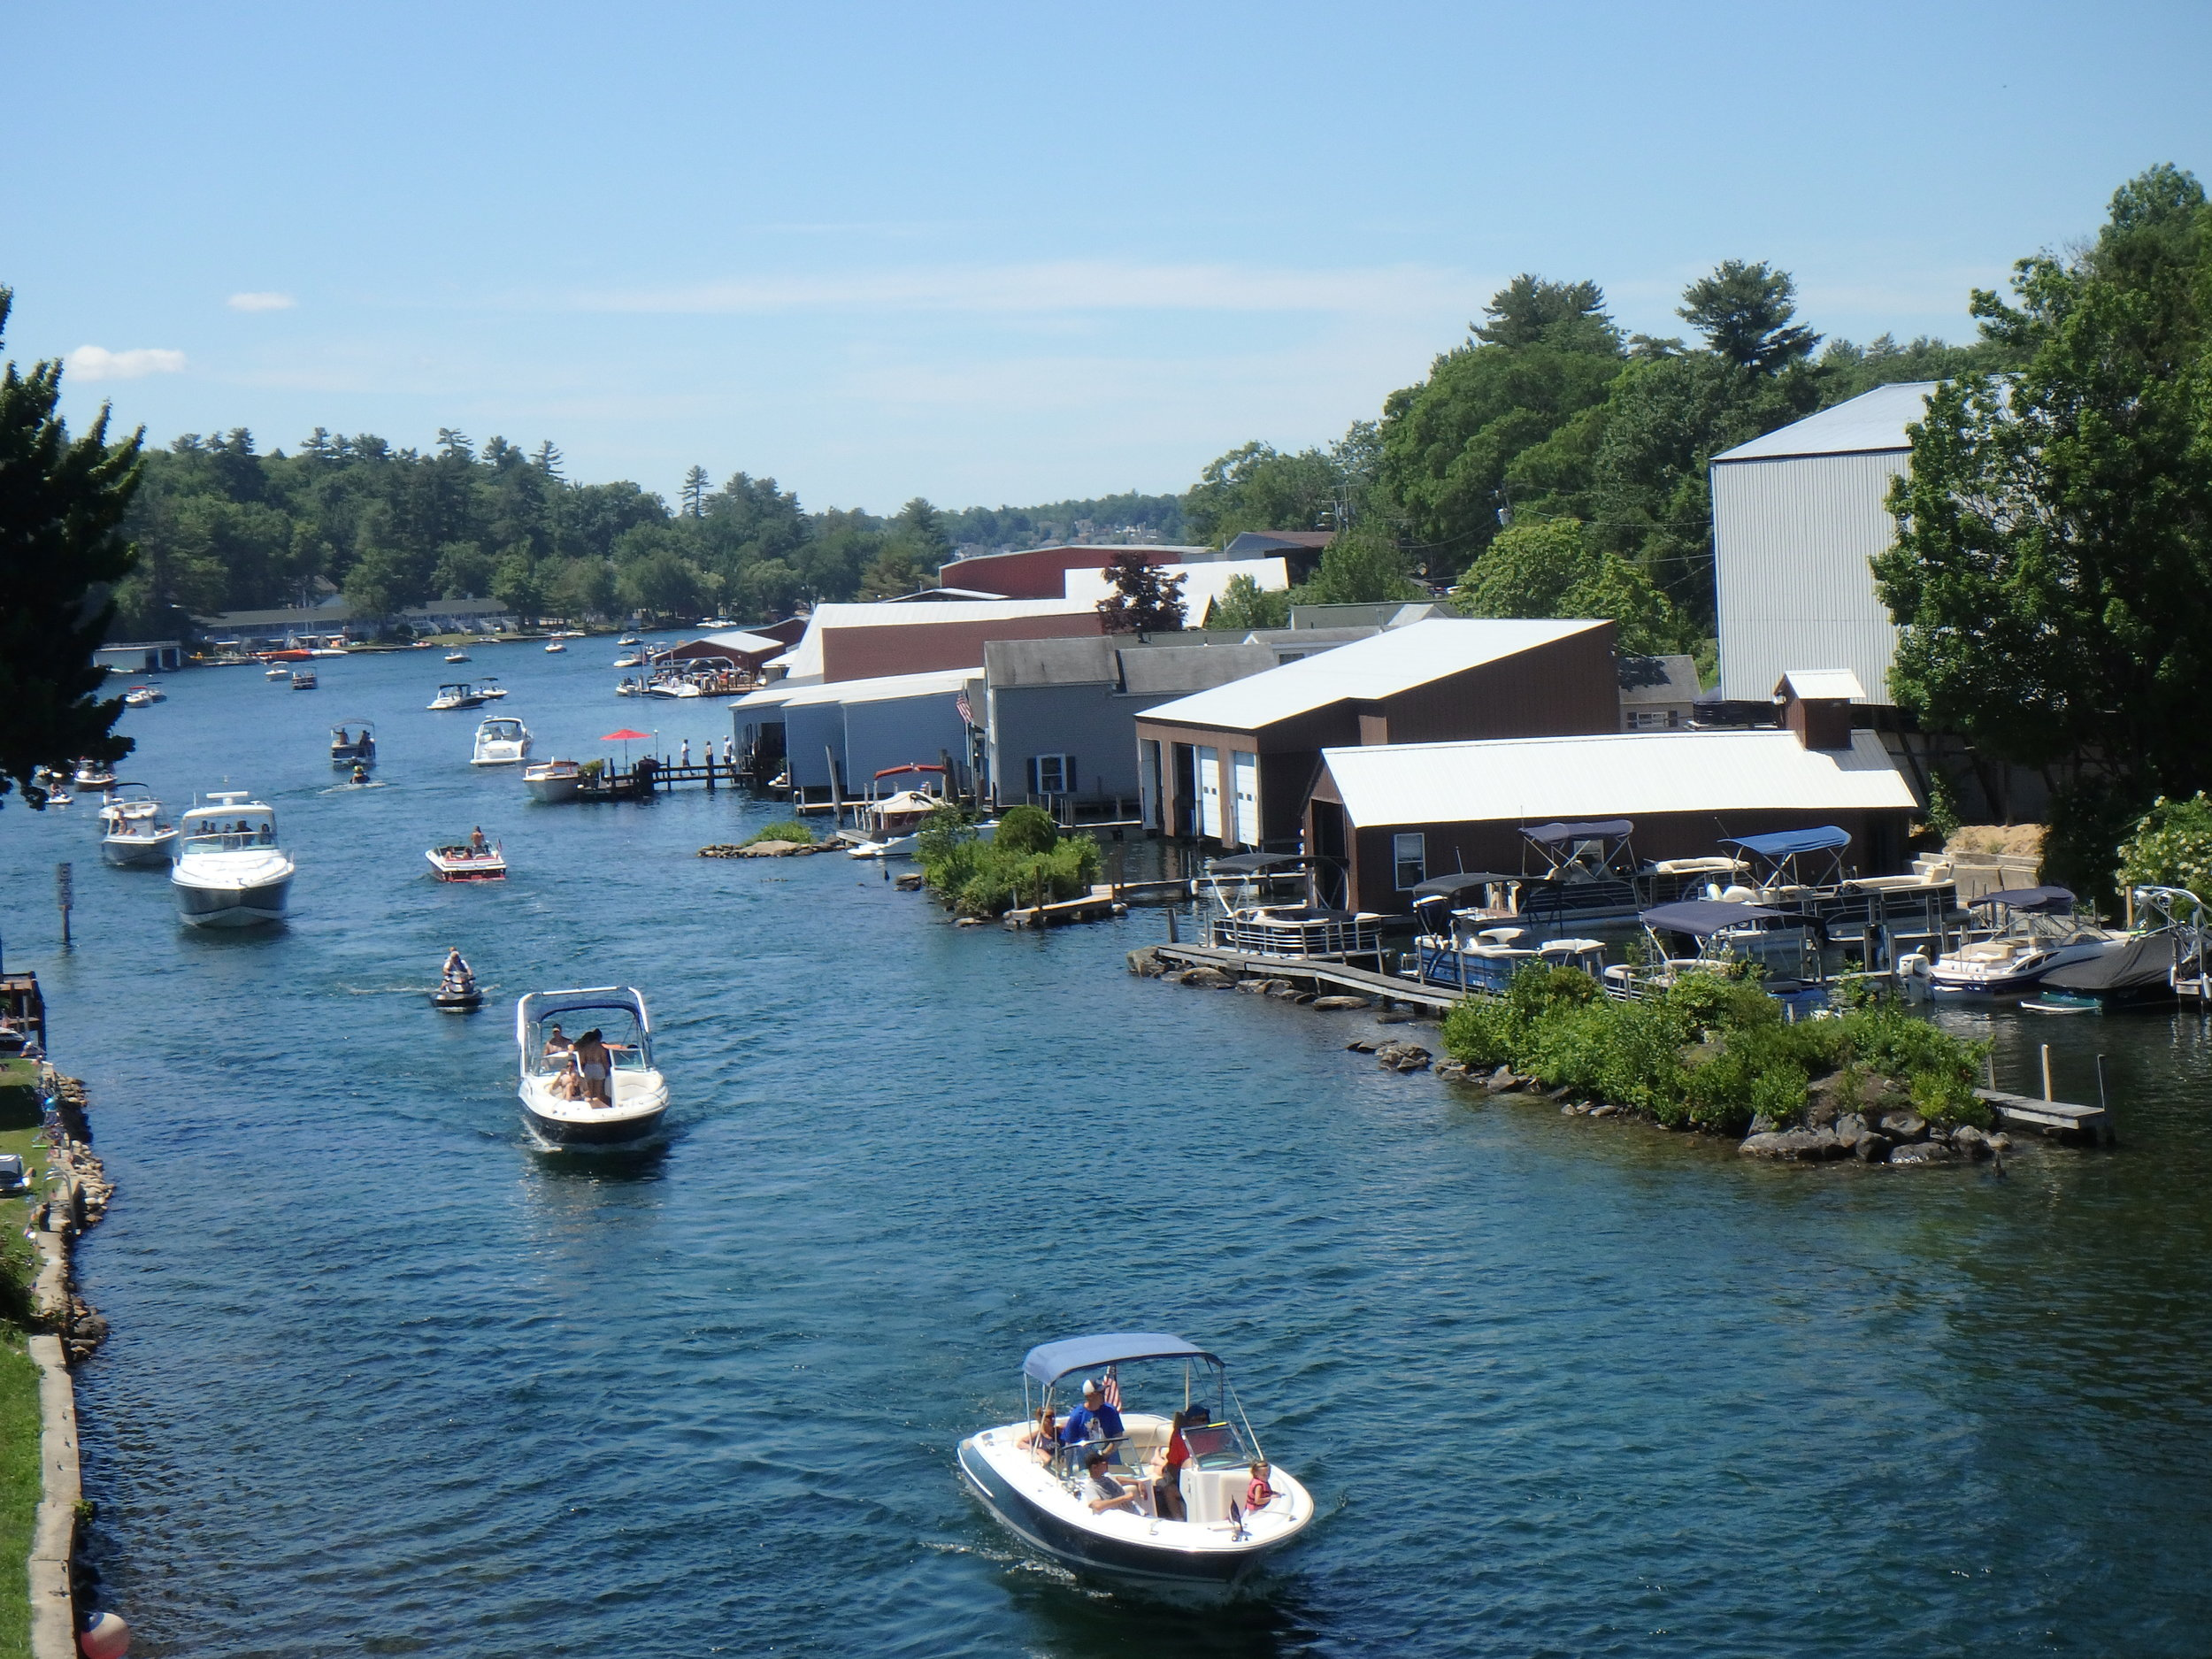 People enjoying the weekend boating. These people are heading up the Channel to Lake Winnipesaukee